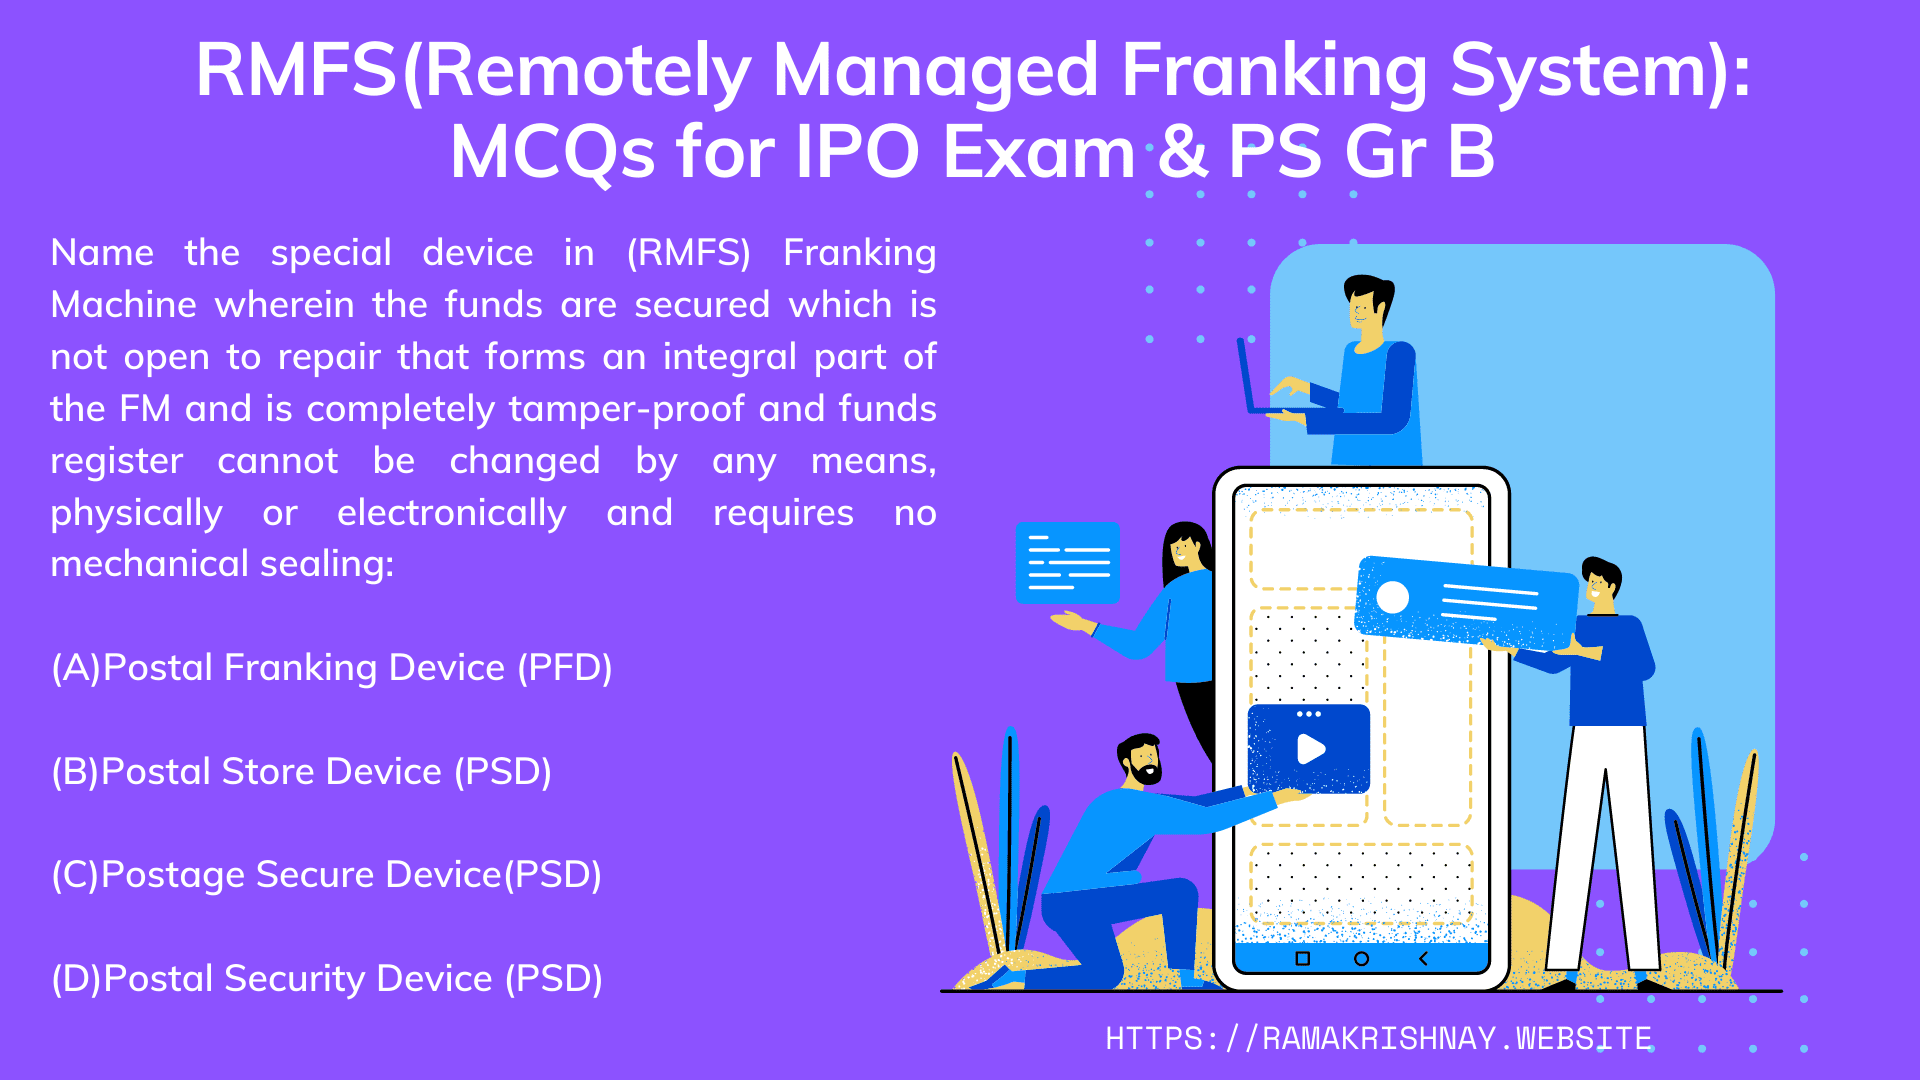 RMFS(Remotely managed Franking System)